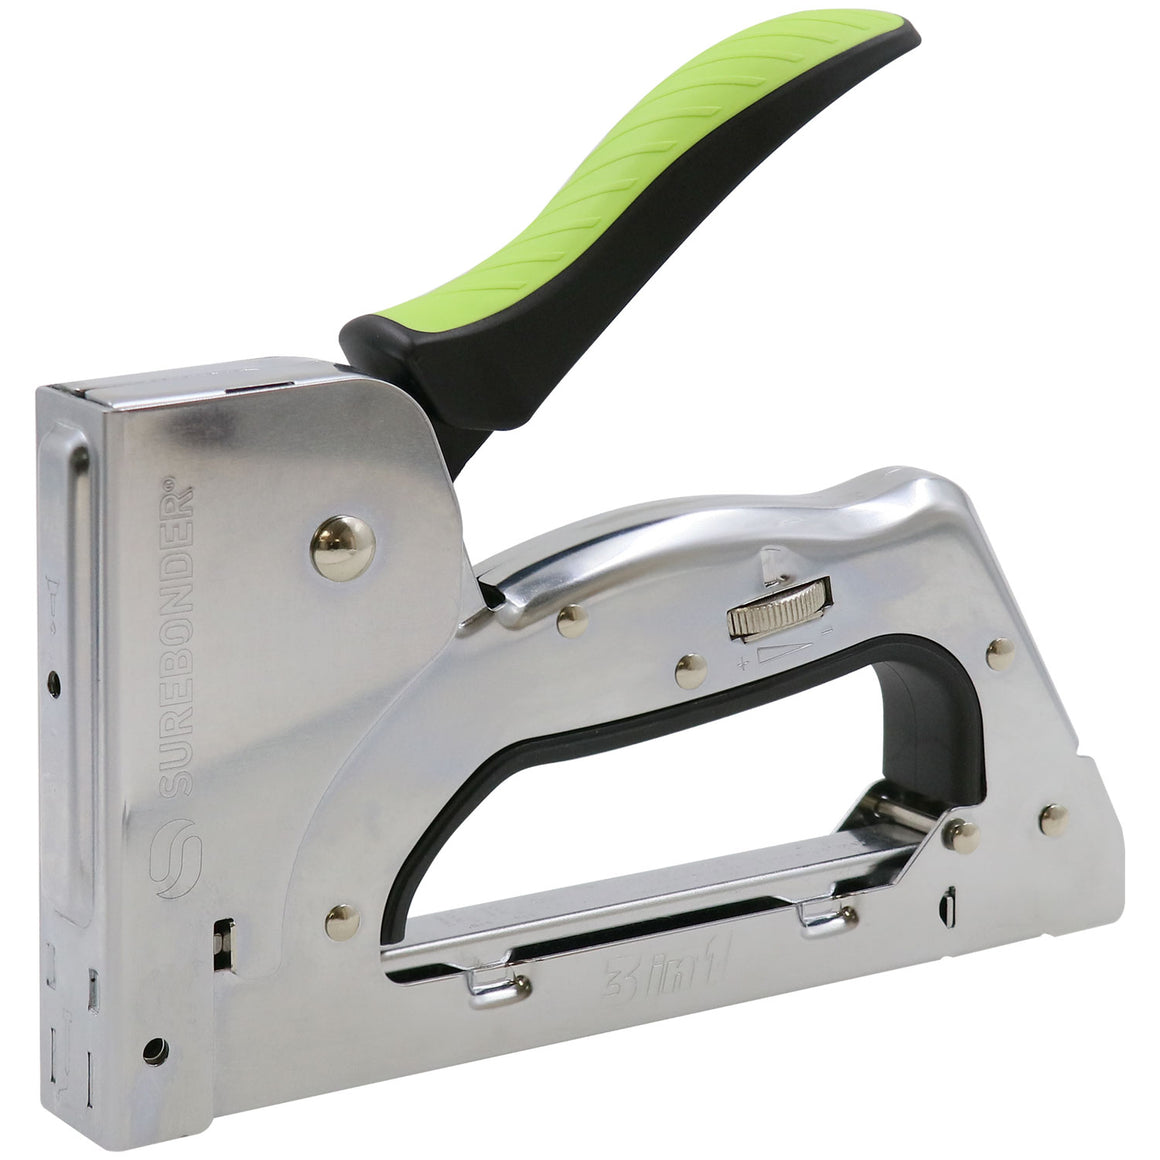 3-in-1 Heavy Duty Staple Gun